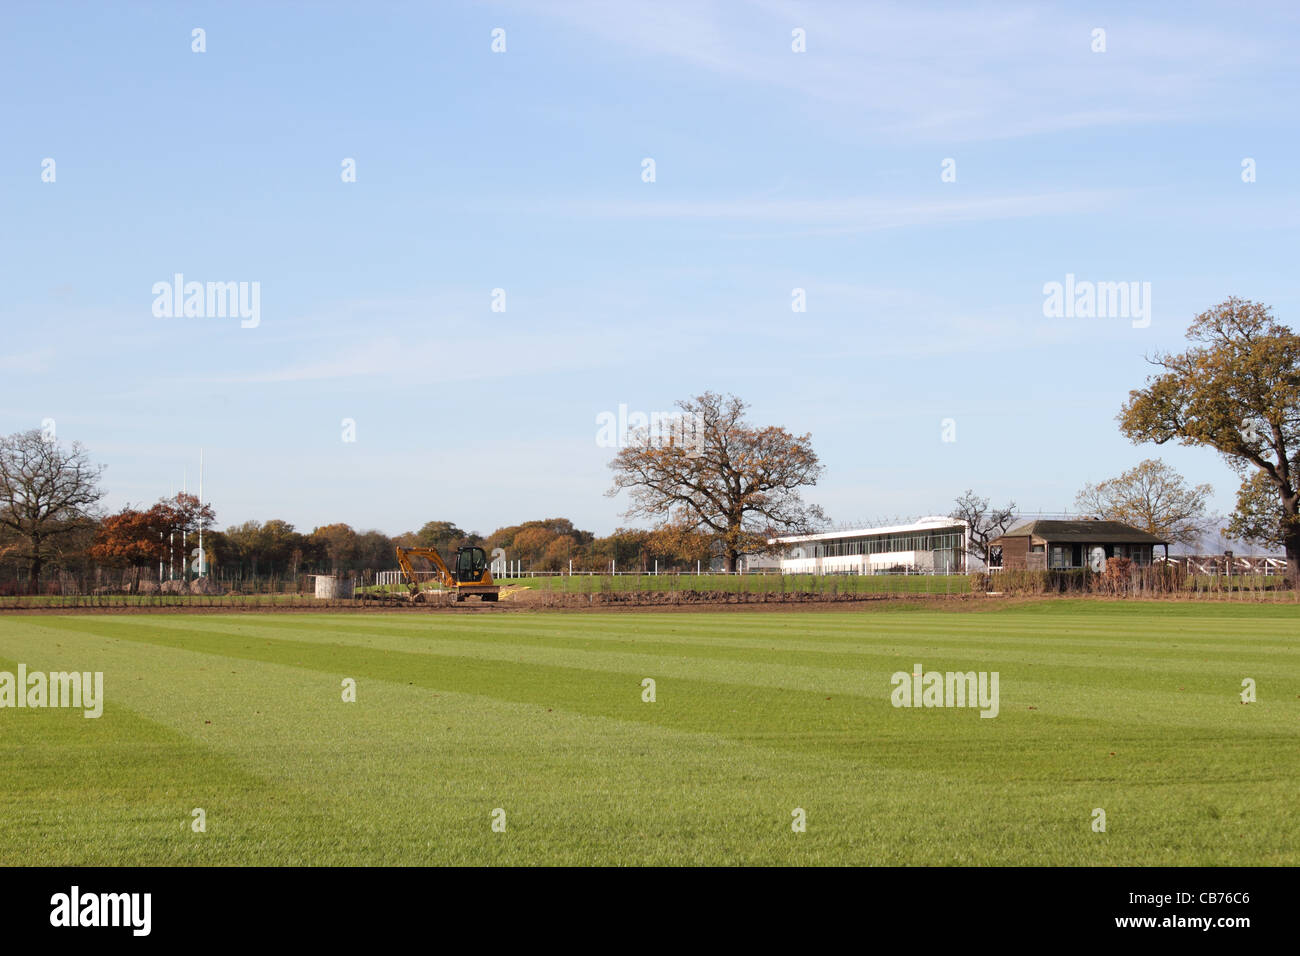 Tottenham Hotspur - The Football club's new training centre and ground, Bull's Cross, Enfield, Near London. - Stock Image